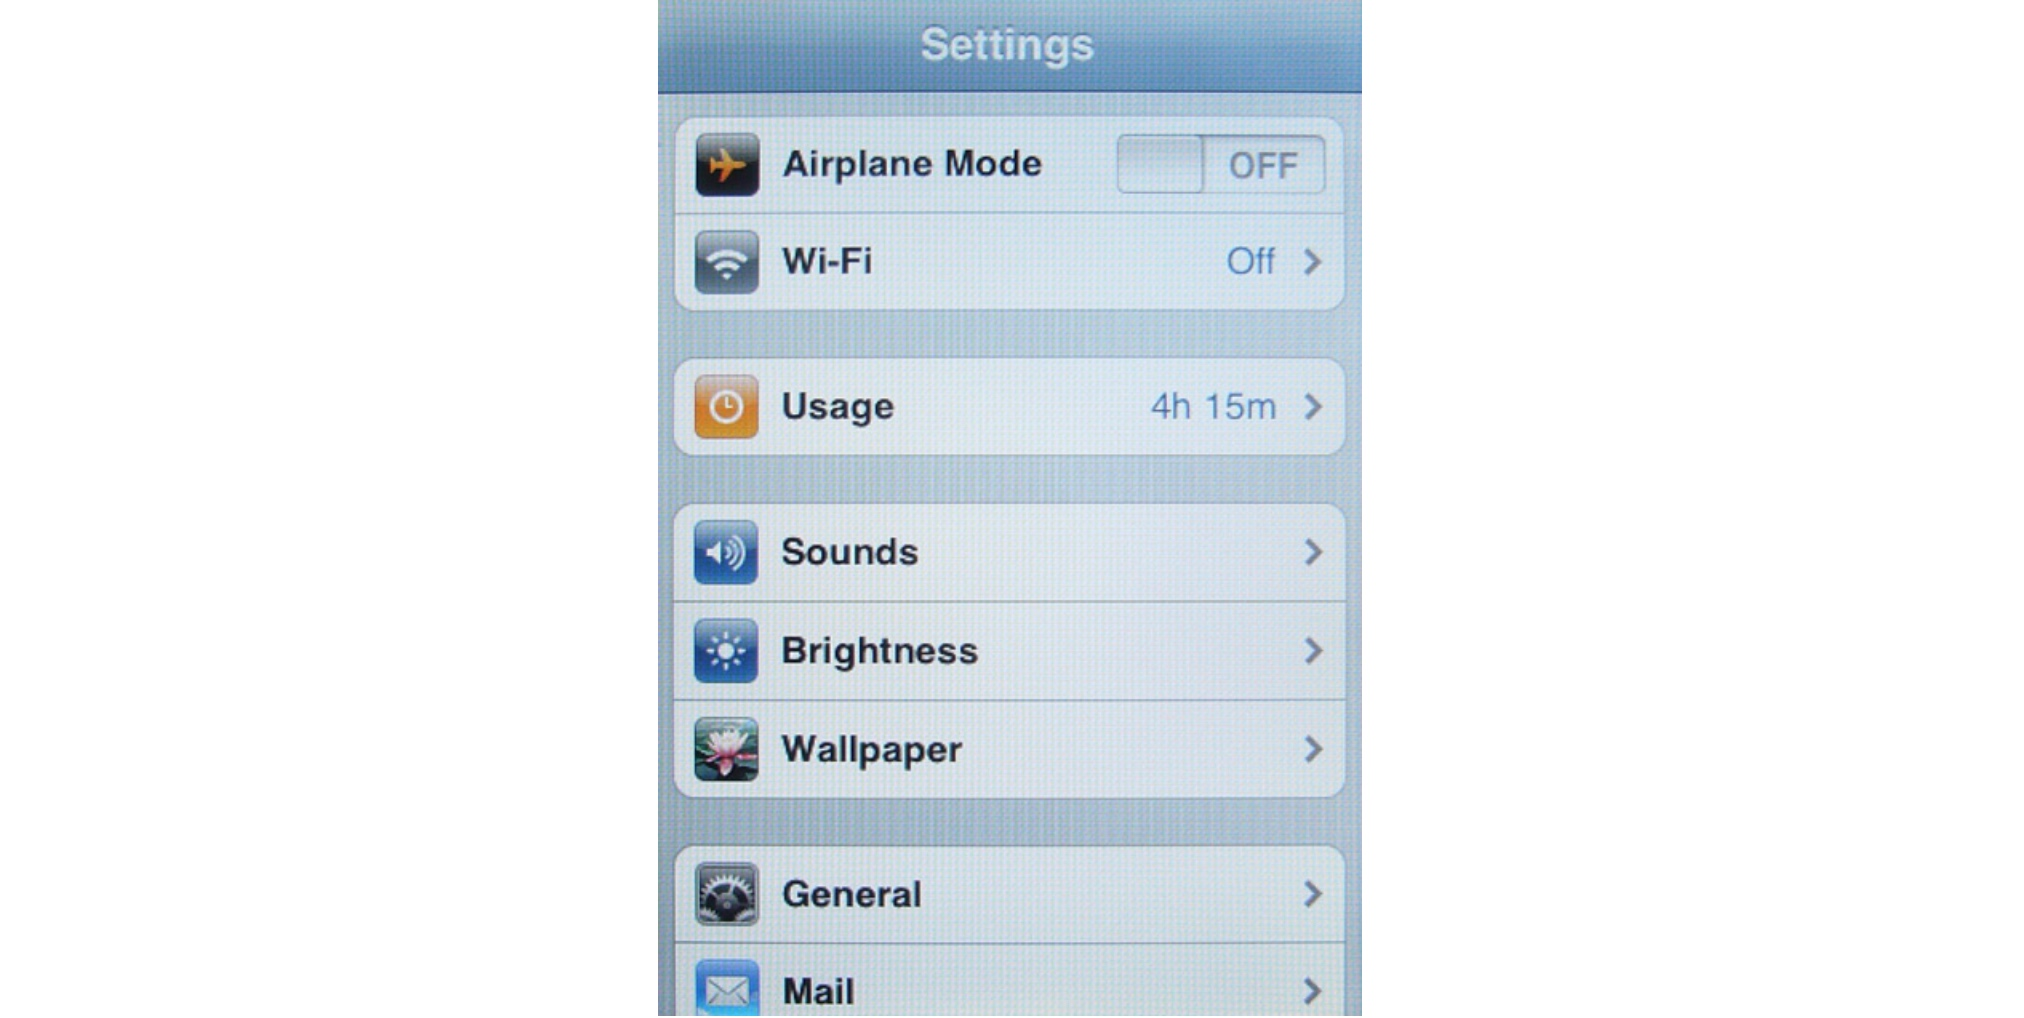 iPhone OS 1 Settings (2007)